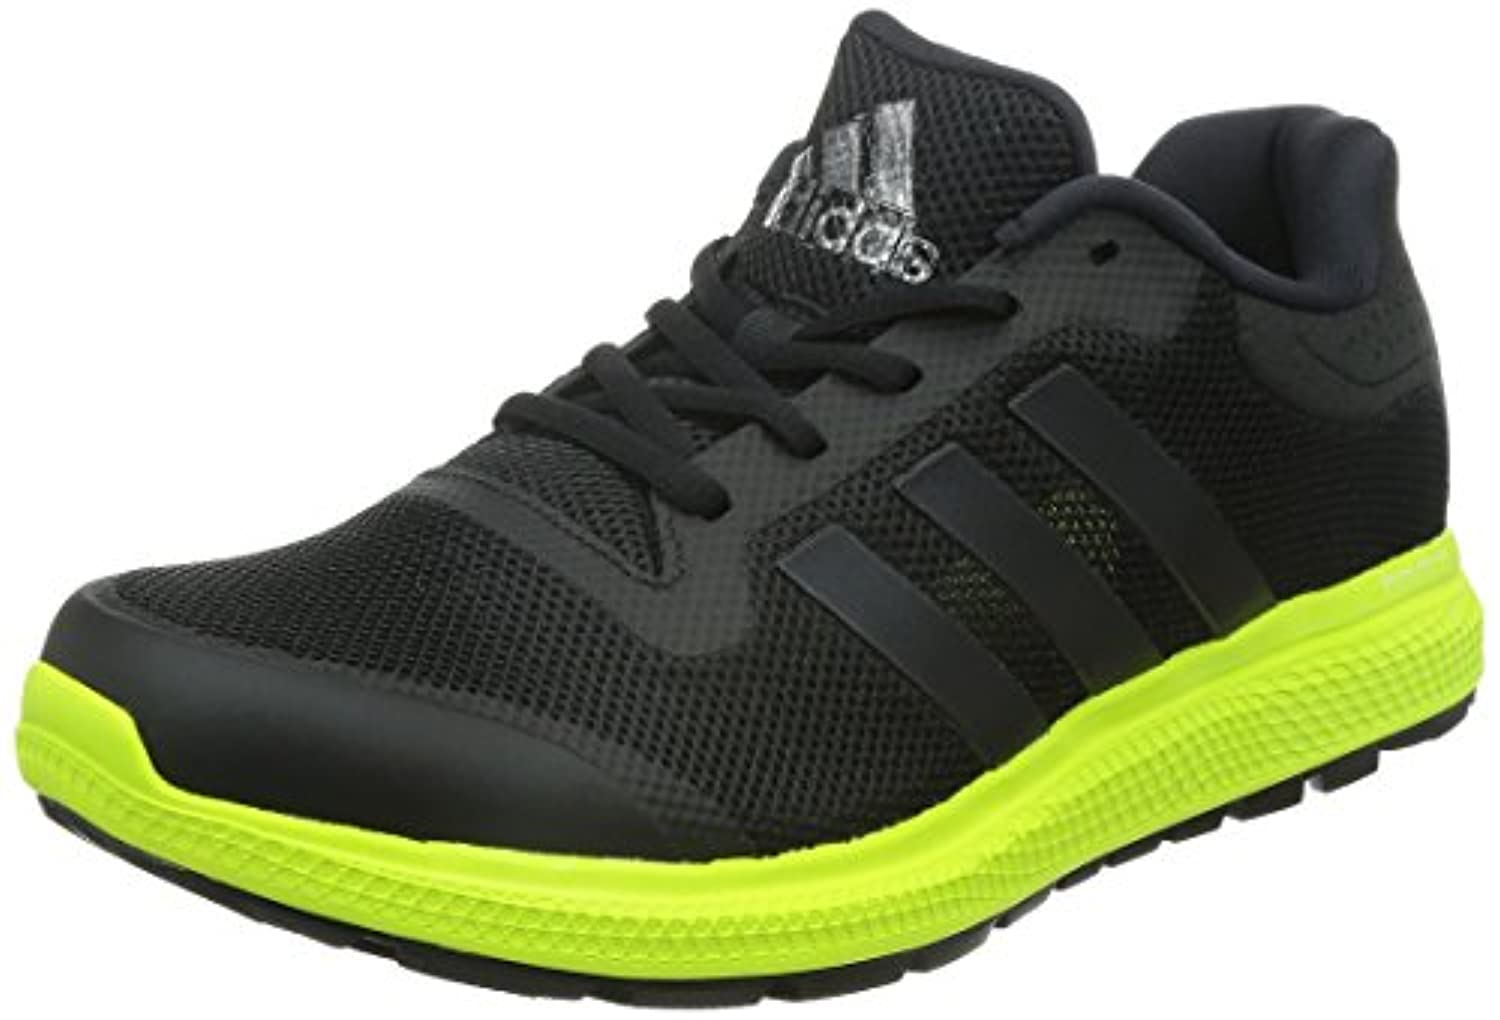 Adidas Men's energy bounce m Running Shoes Black US 10.5